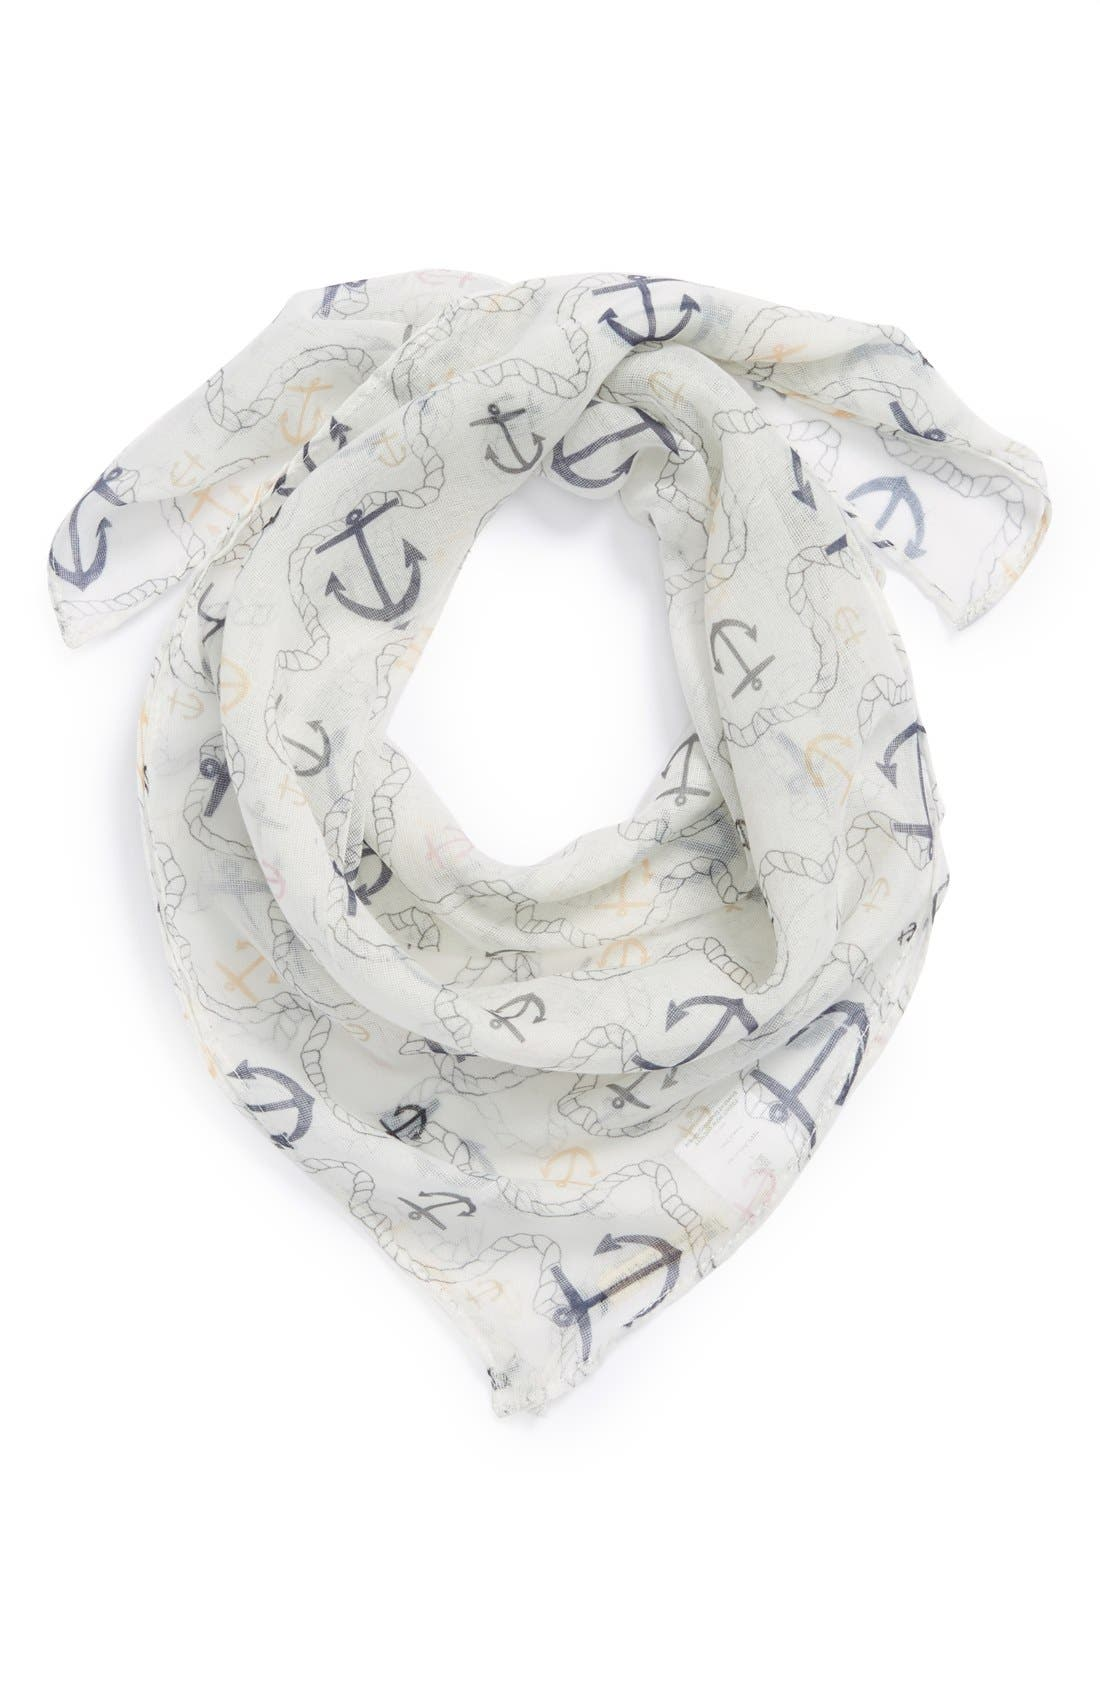 Main Image - Front Row Society 'Anchor' Neckerchief